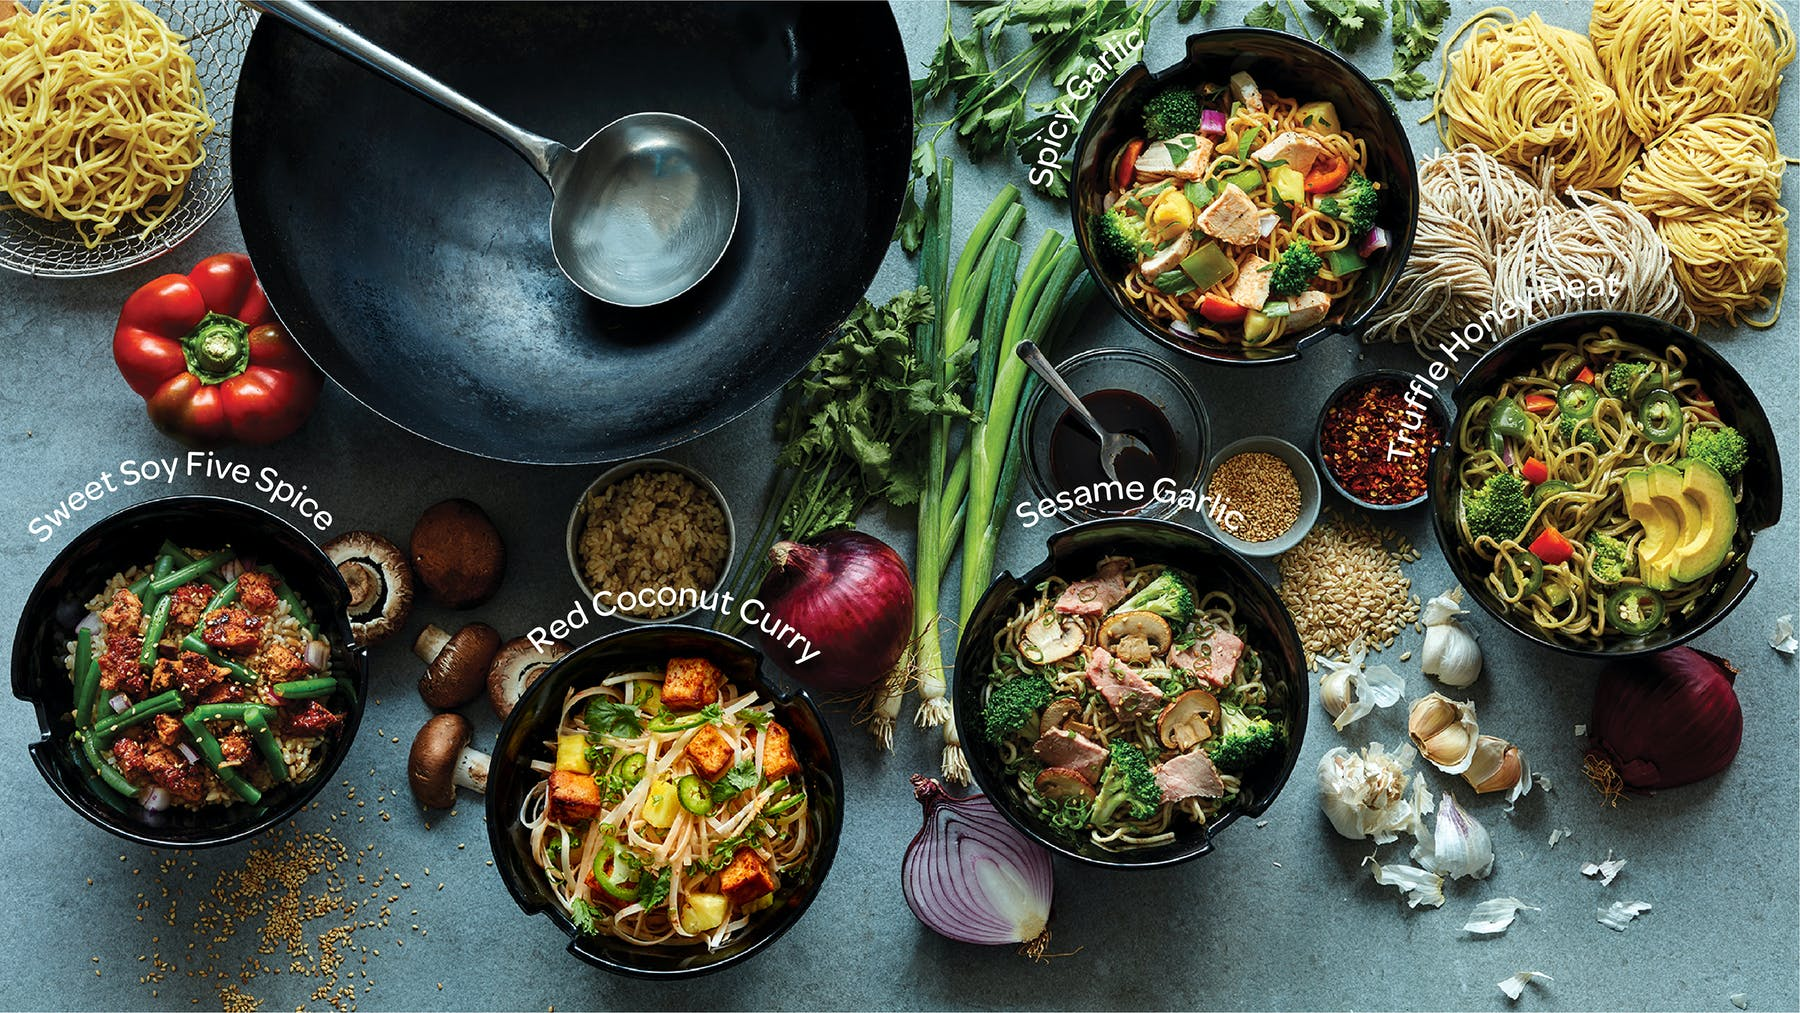 stir-fry dishes